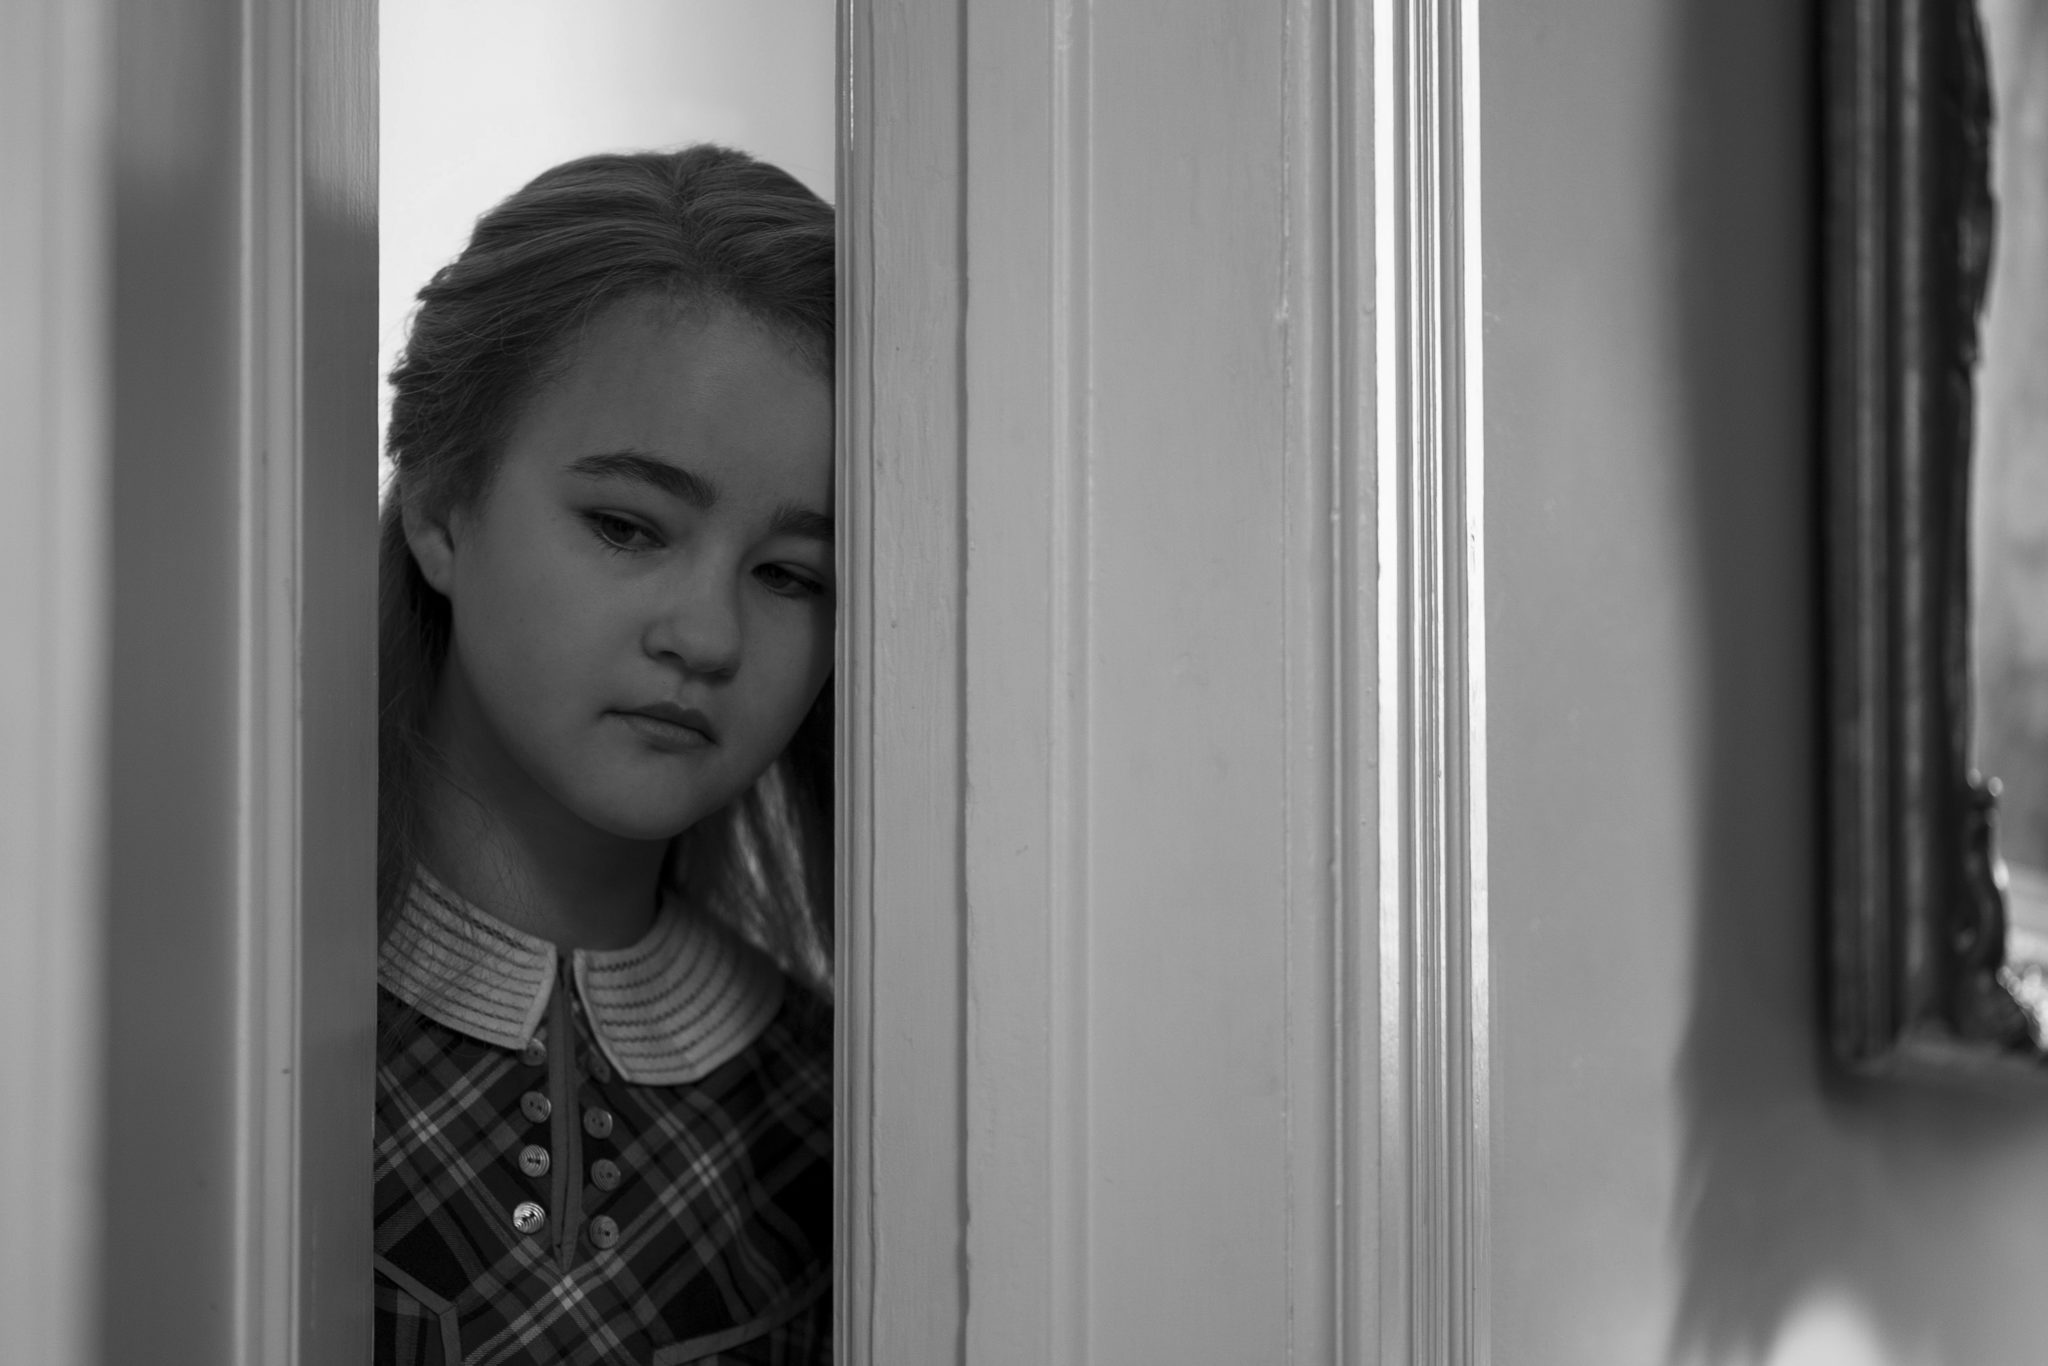 Newcomer Millicent Simmonds